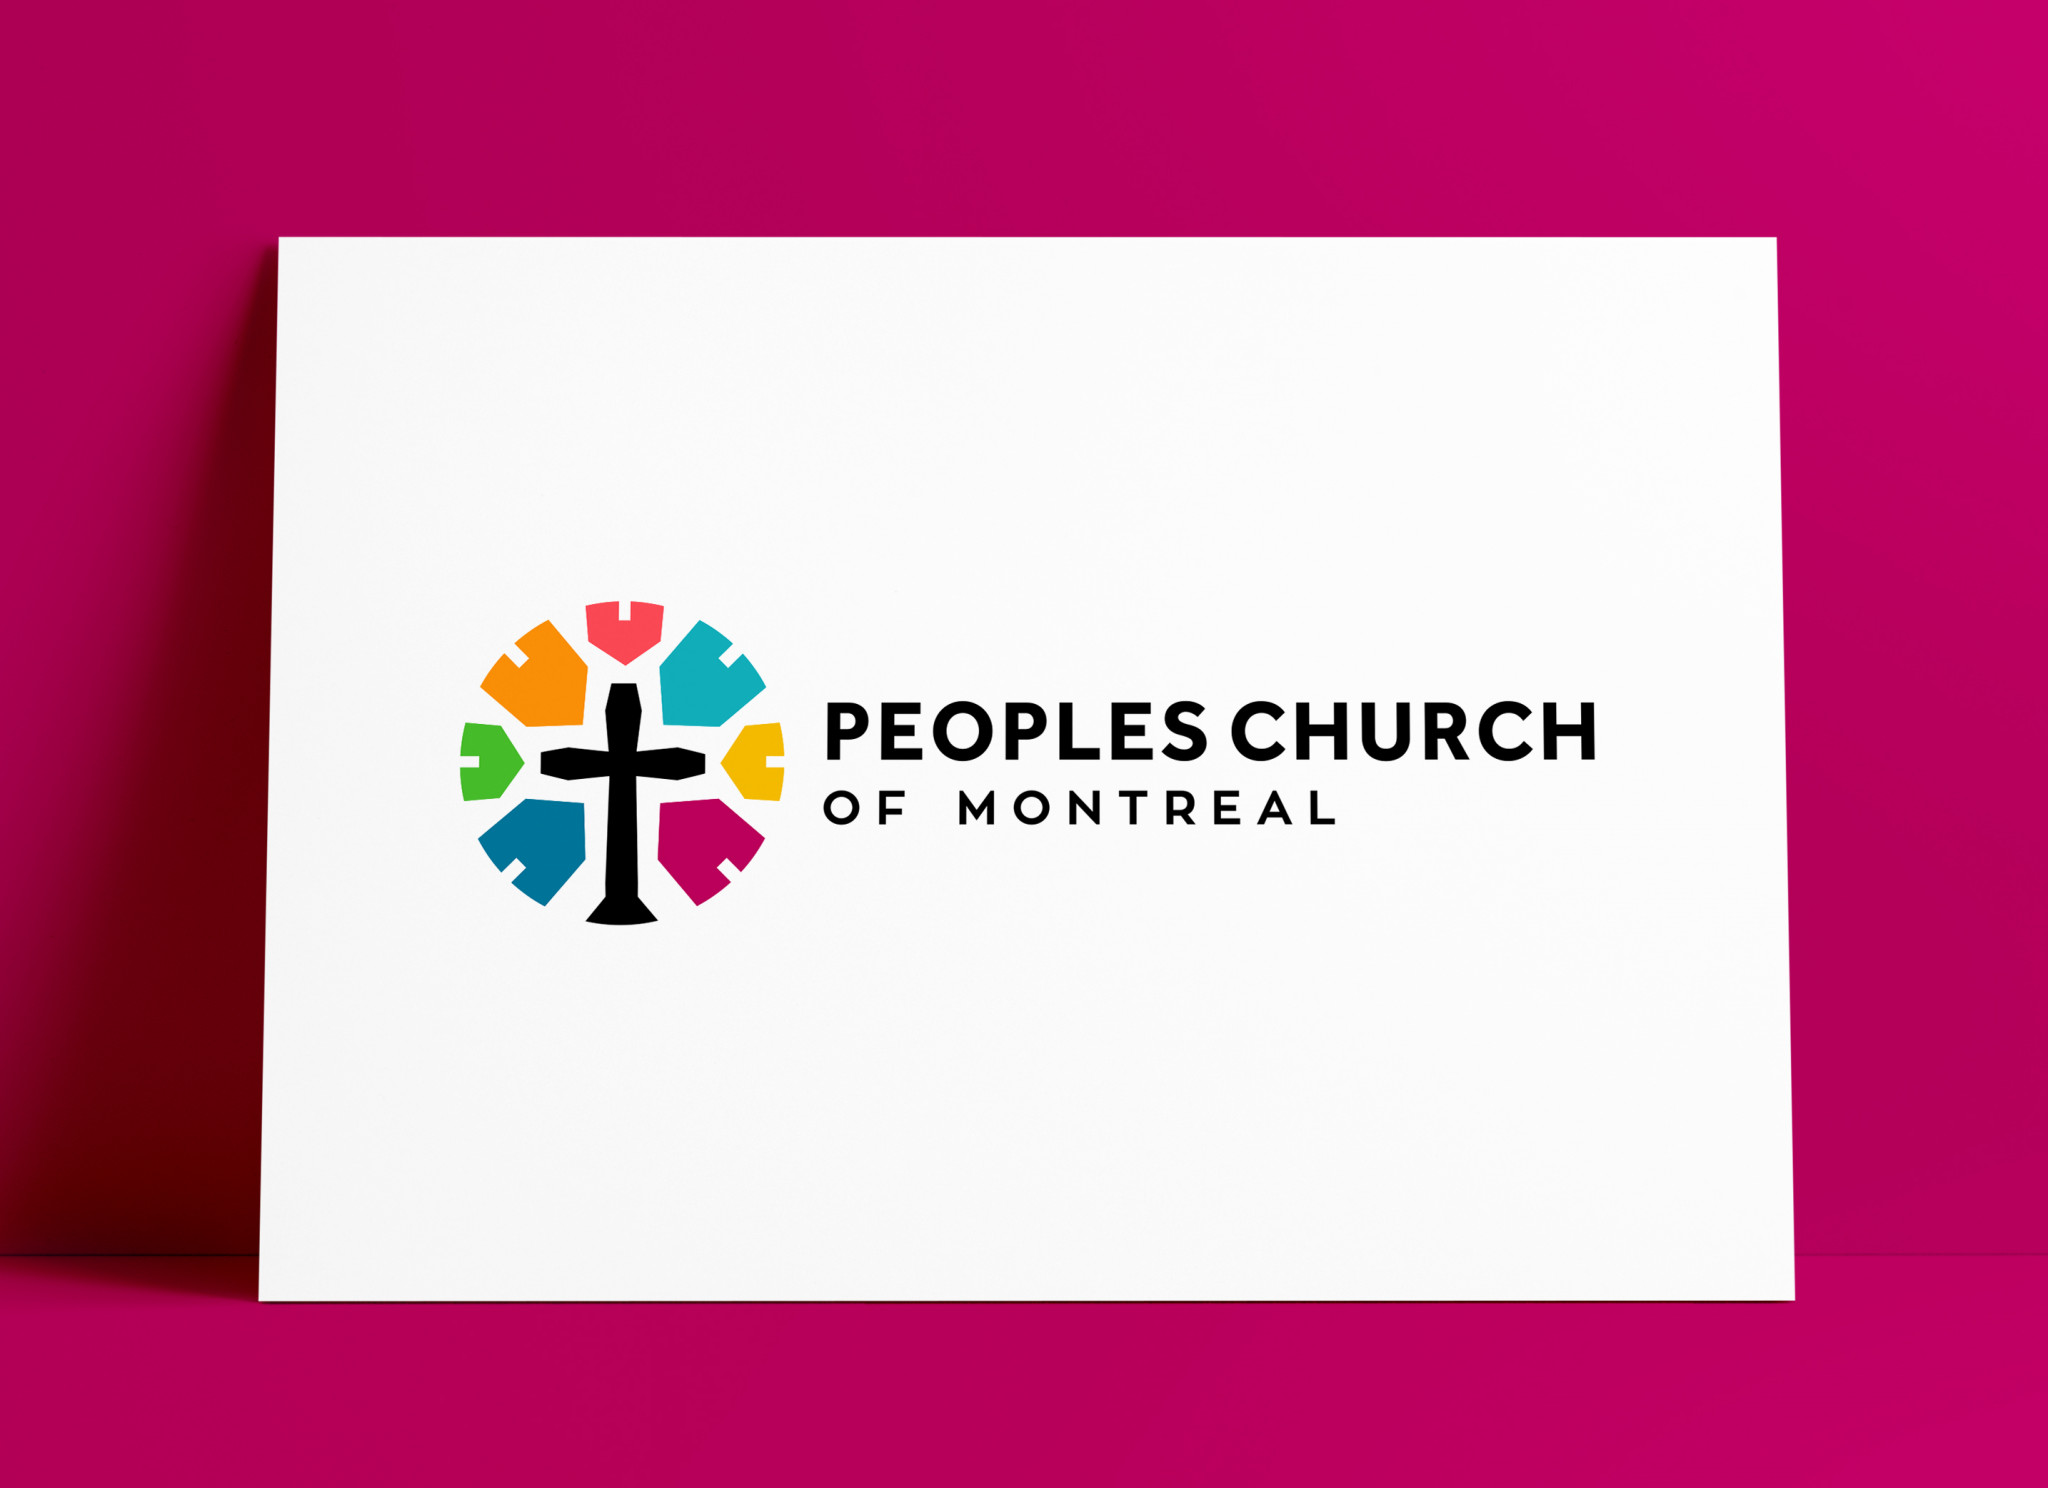 Peoples Church of Montreal Logo and Brand Identity Design by The Logo Smith